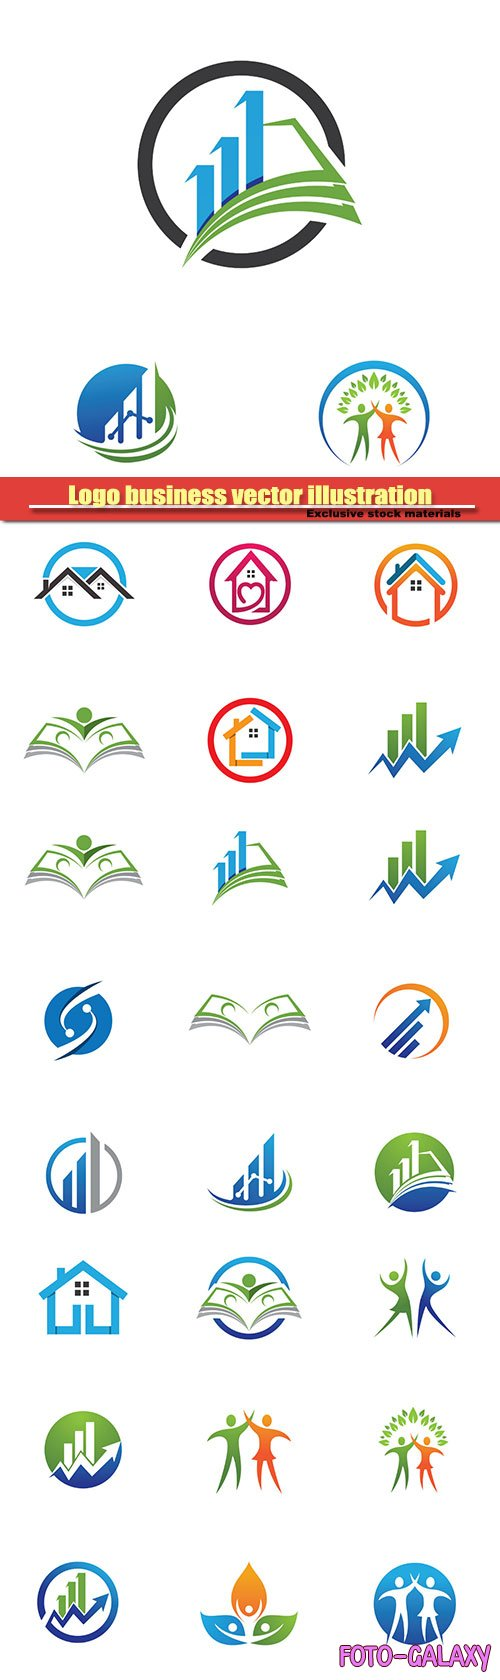 Logo business vector illustration #31